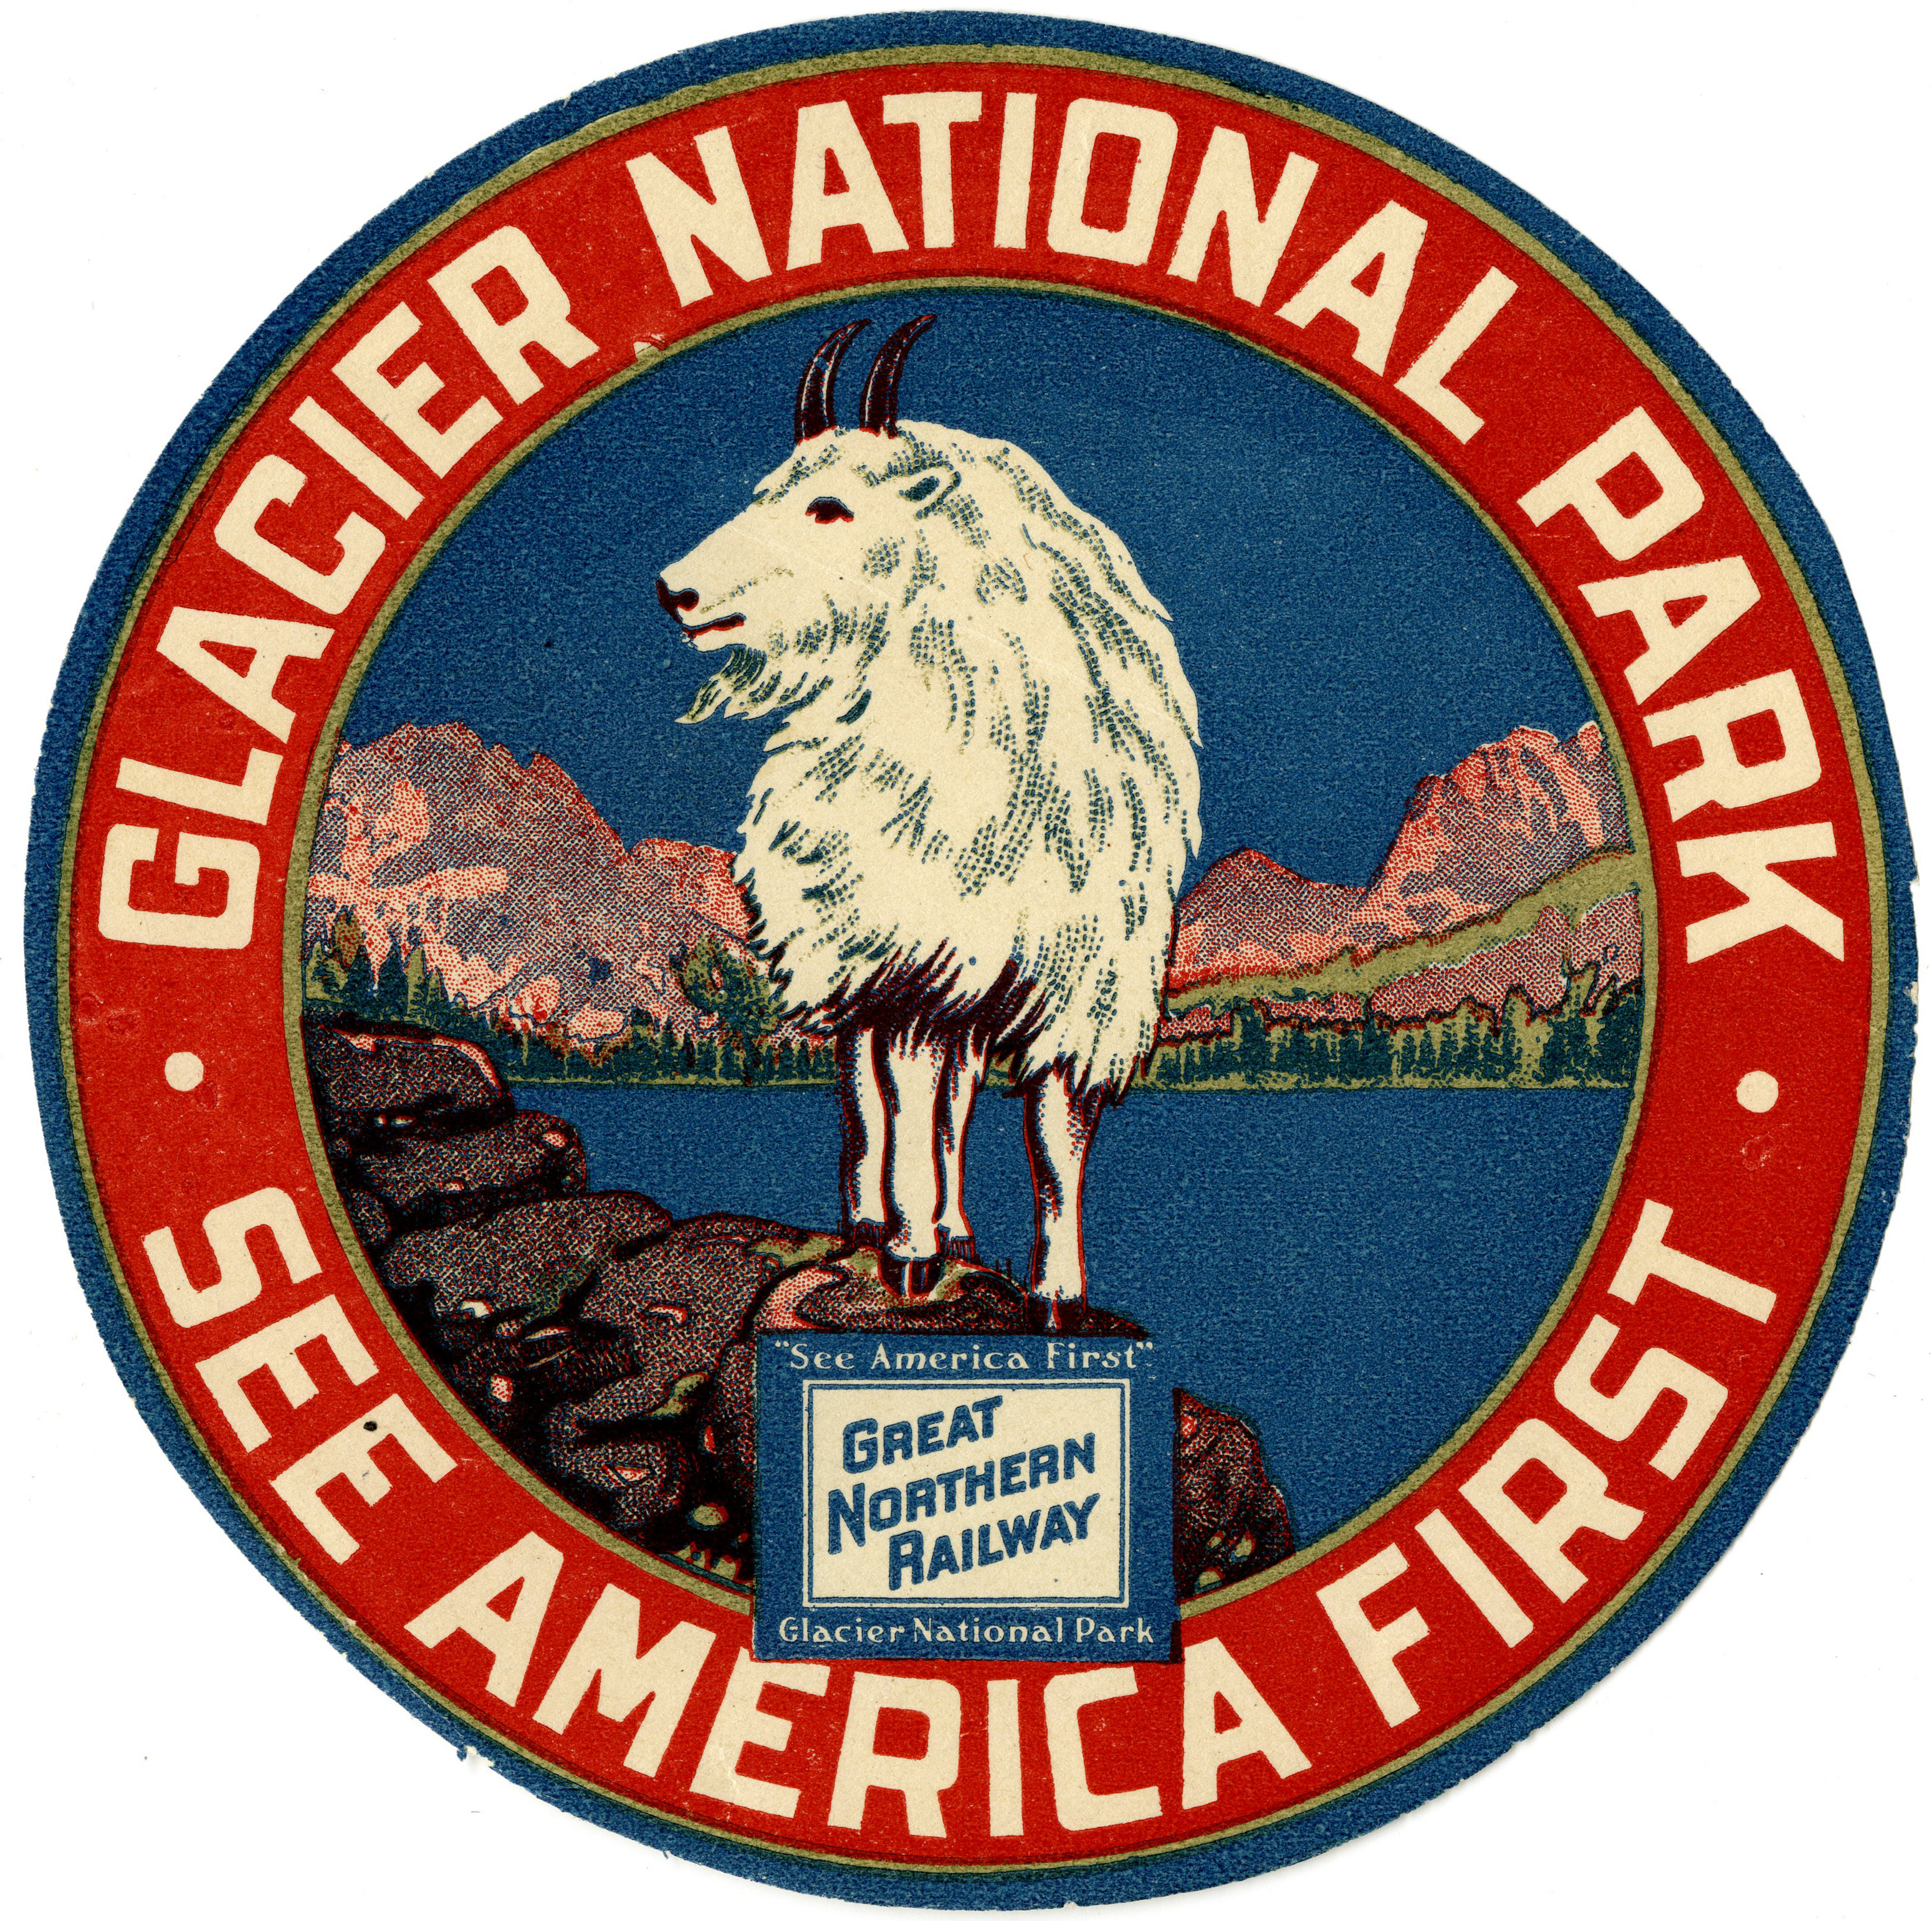 See America First seal from Great Northern railcars